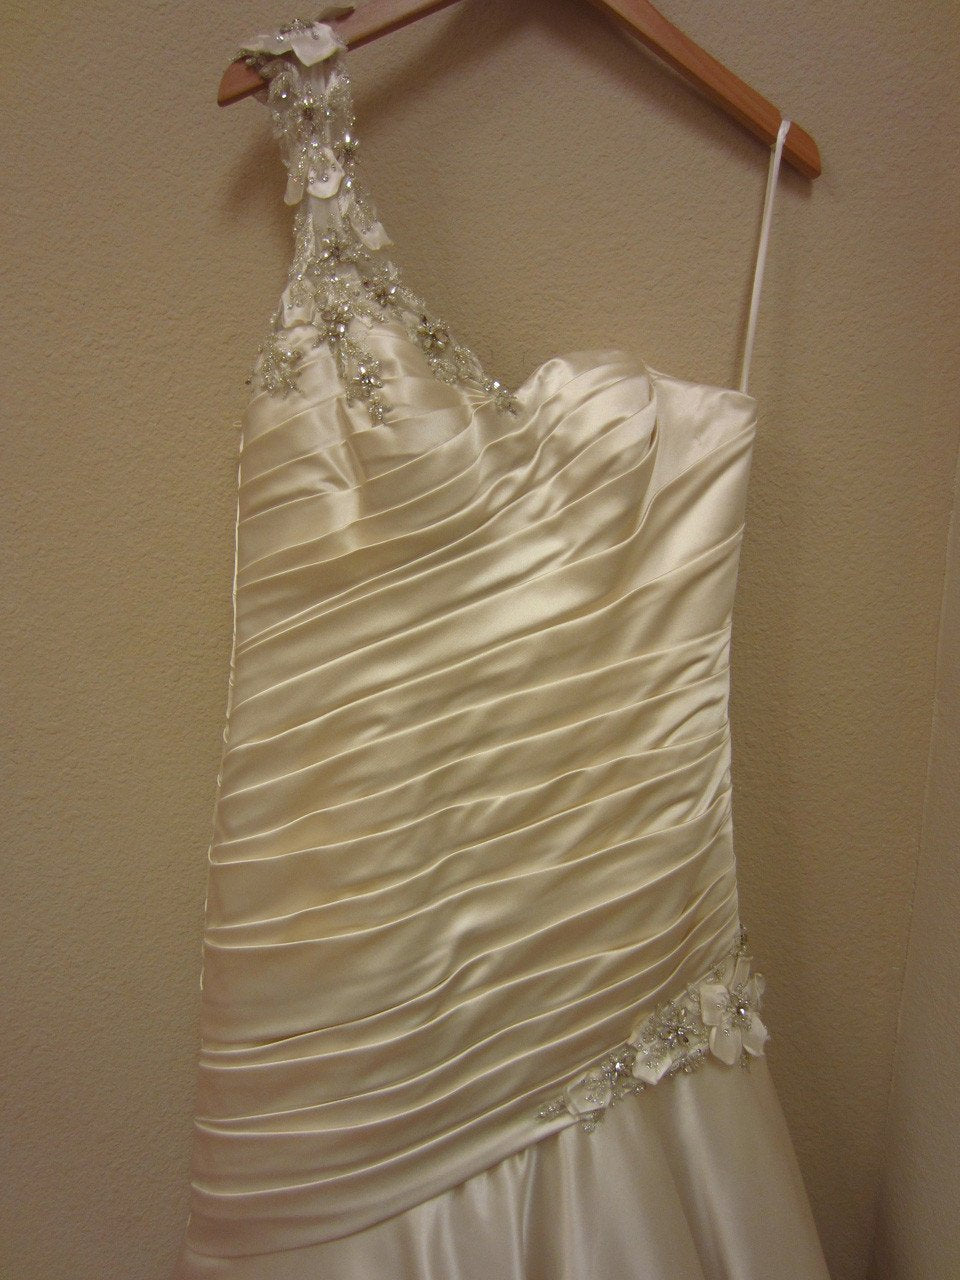 Allure 2467 Ivory size 12 In Stock Wedding Dress - Tom's Bridal